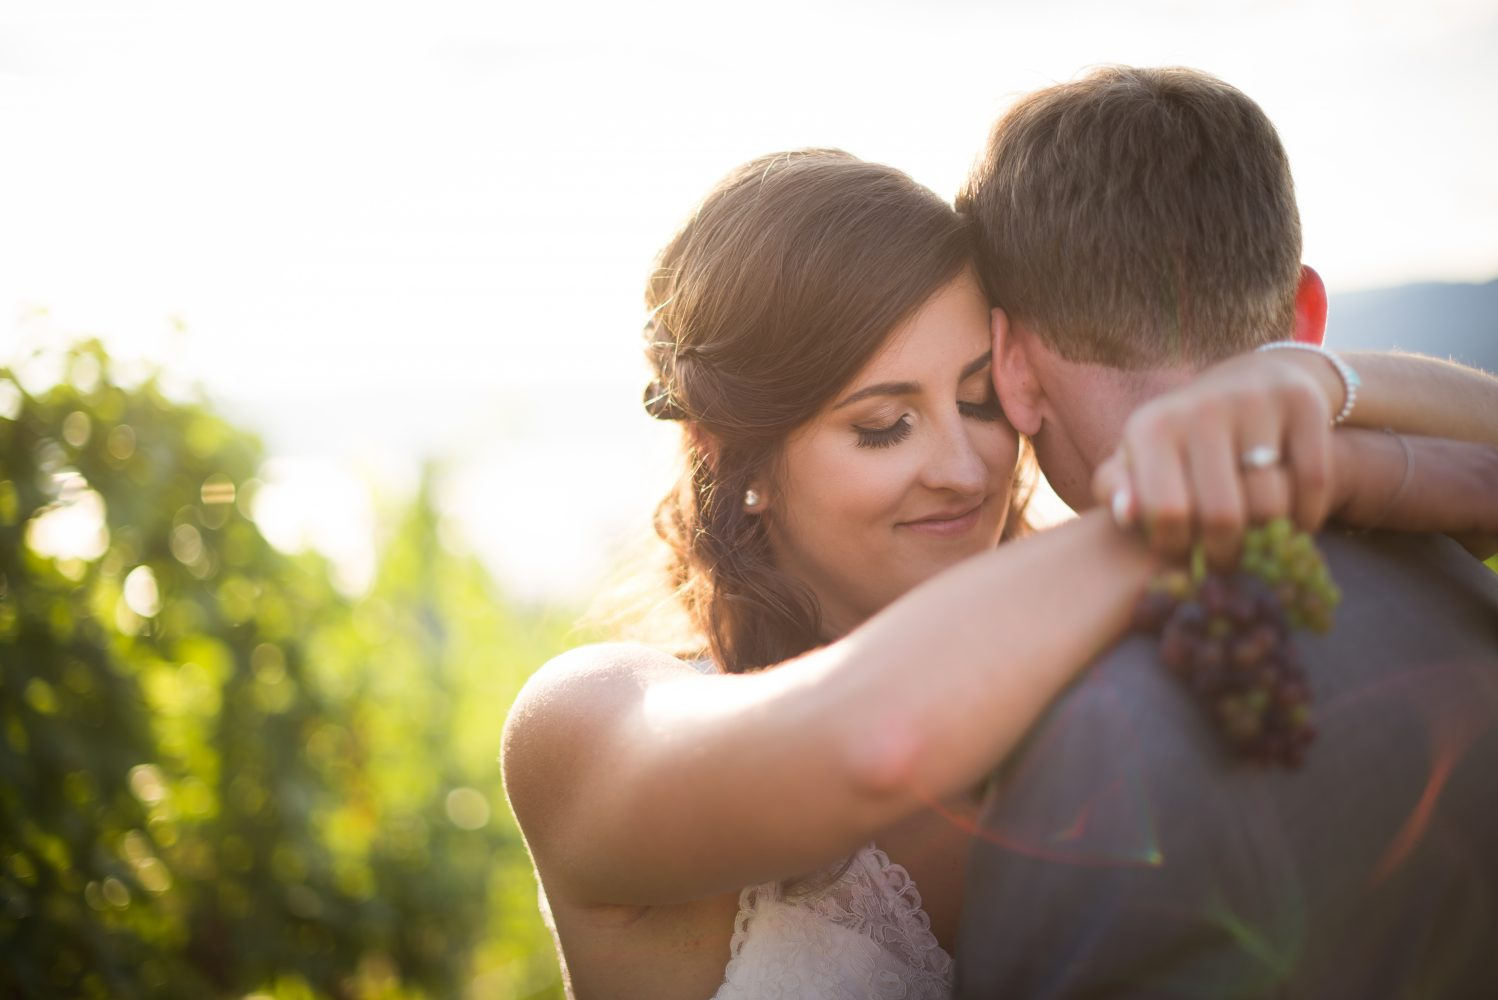 Pyramid Hill Winery in Kelowna and a portrait of the bride and groom in the vinyard | 3Haus Photographics